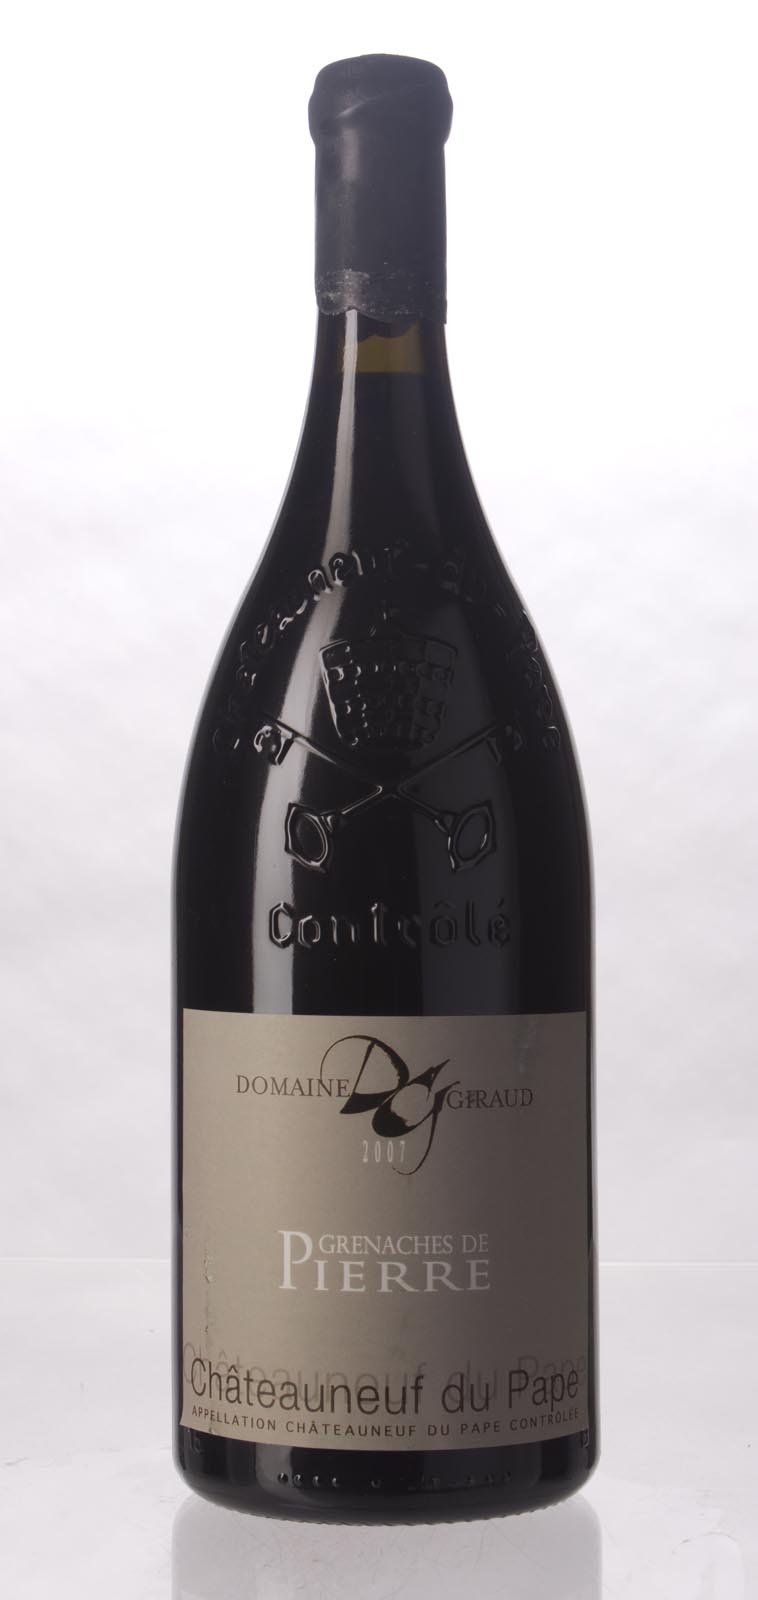 Domaine Giraud Chateauneuf du Pape Cuvee les Grenache de Pierre 2007, 1.5L (WA95+, ST94, WS96) from The BPW - Merchants of rare and fine wines.